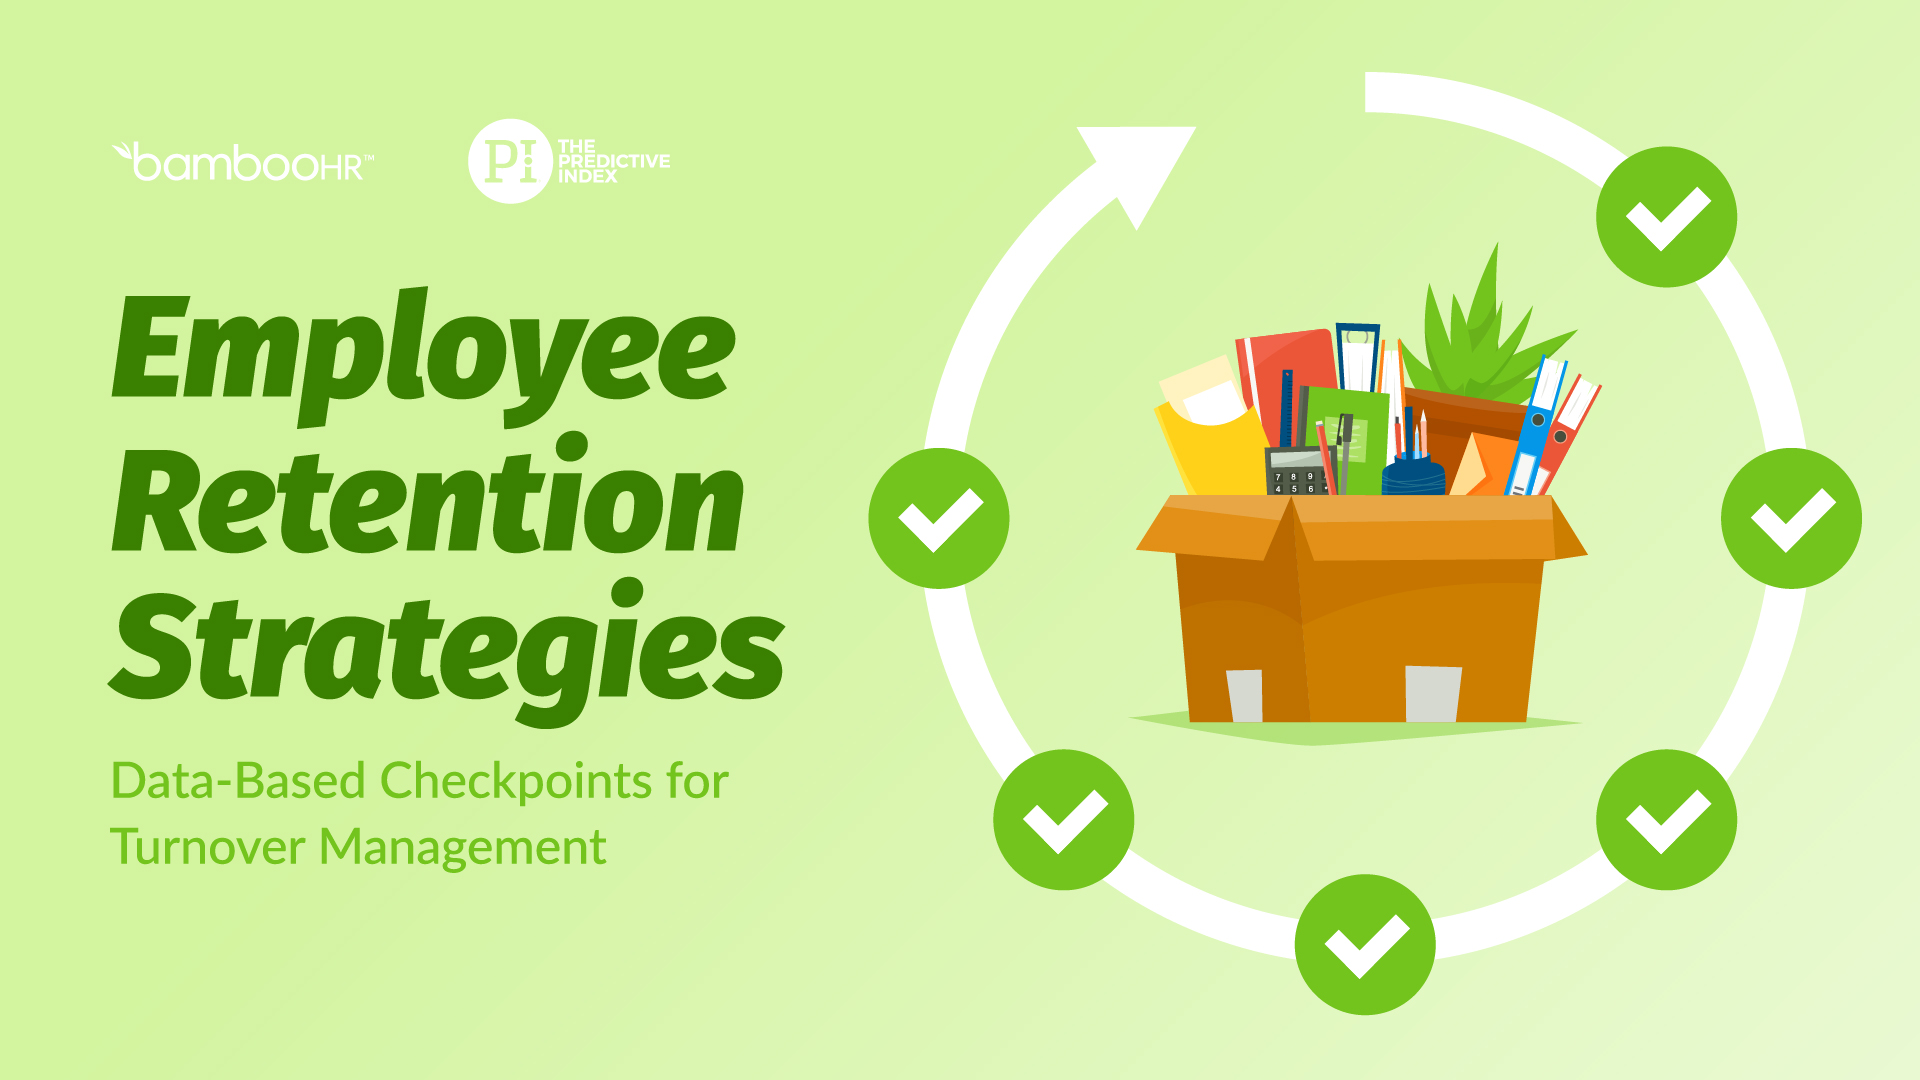 Employee Retention Strategies: Data-Based Checkpoints for Turnover Managements